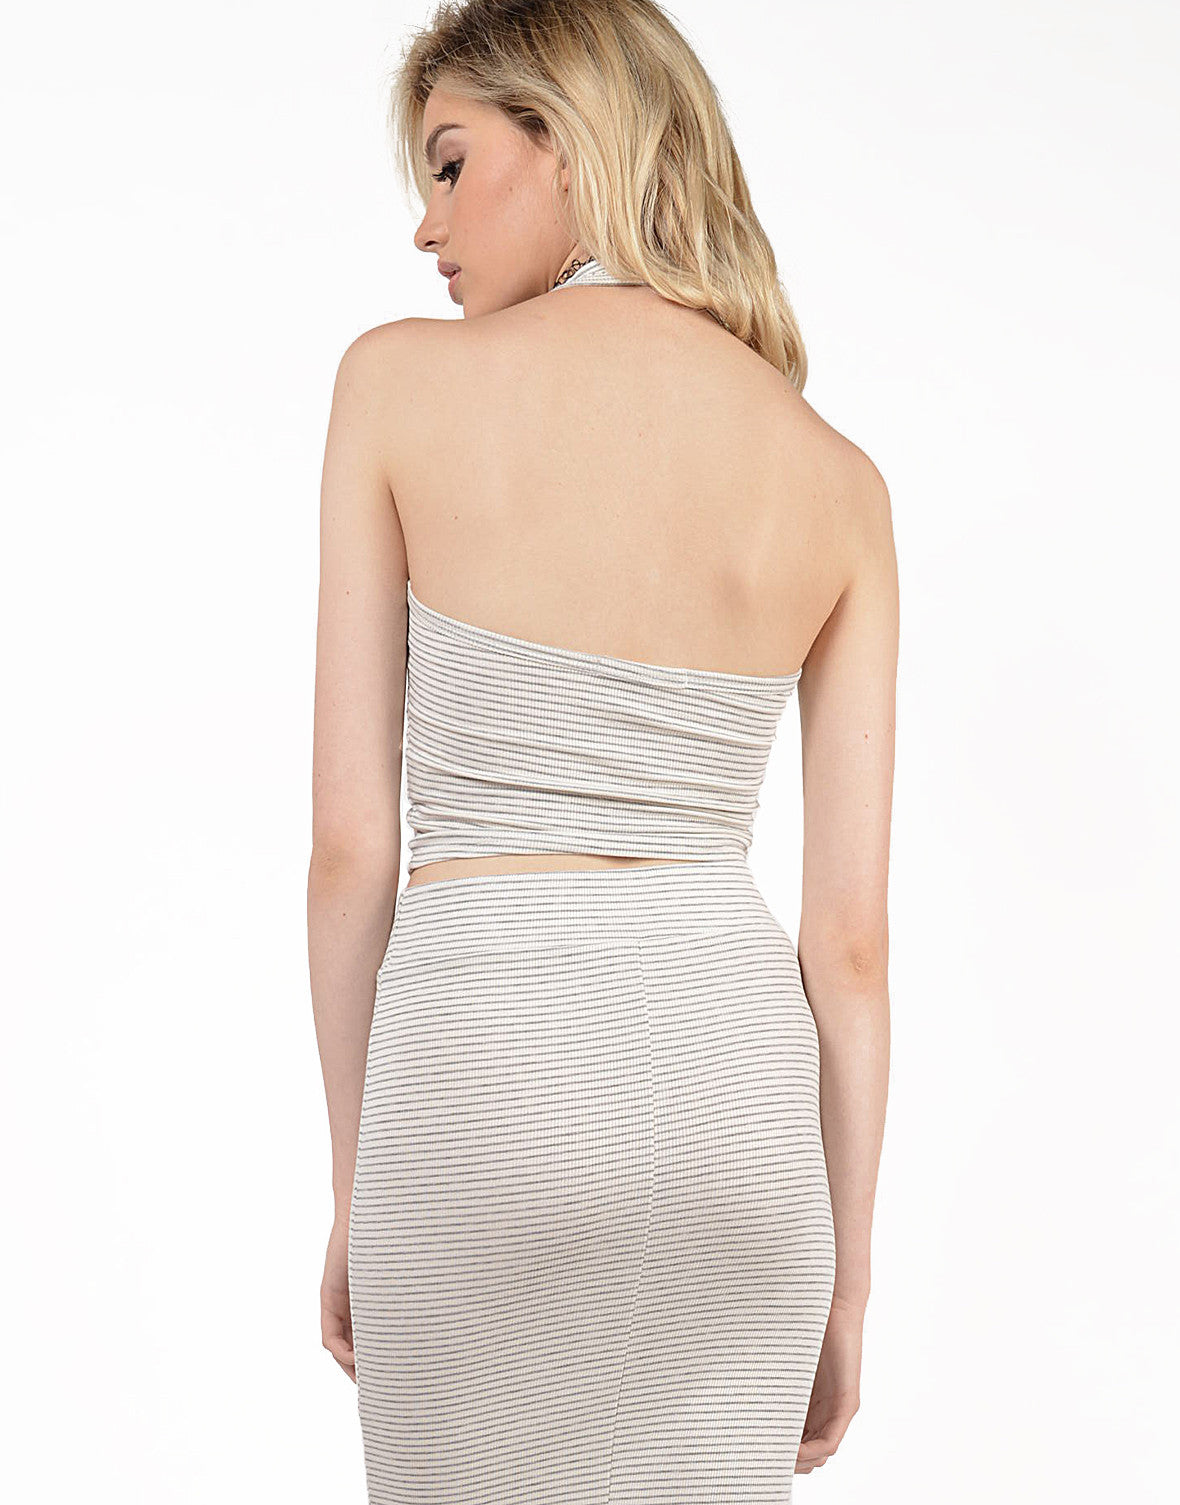 Back View of Striped Zip Halter Top